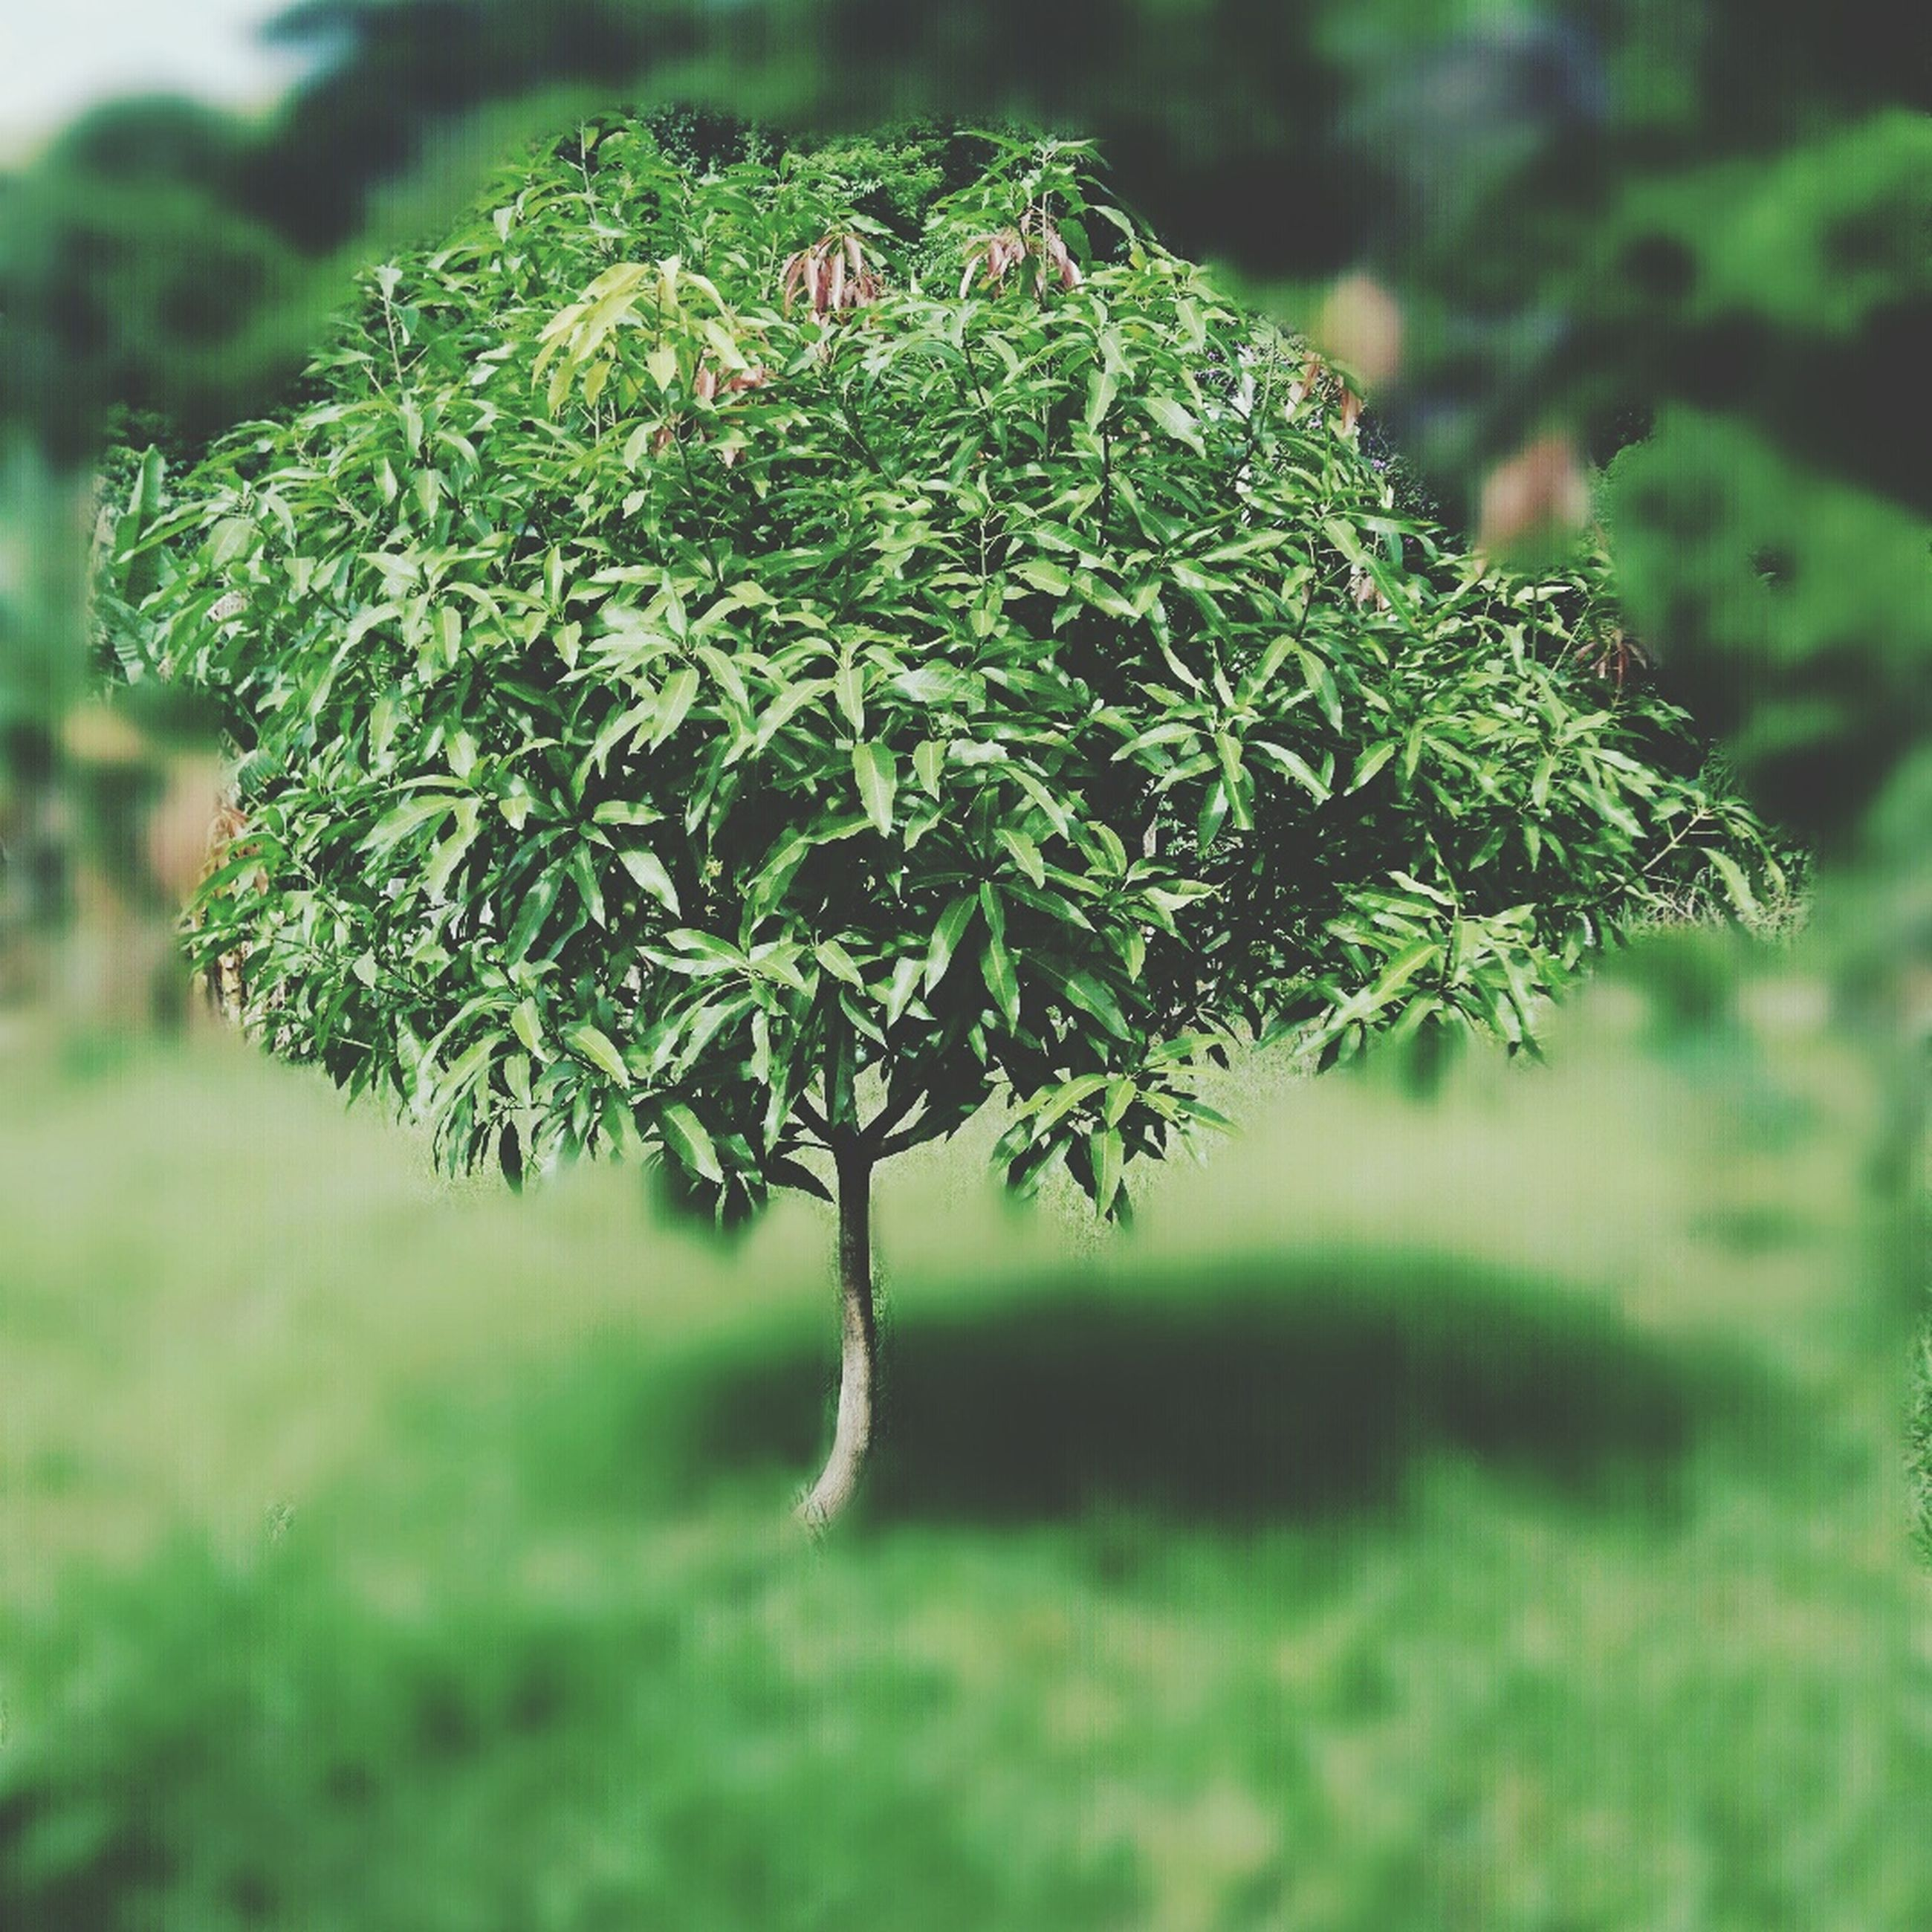 nature, green color, growth, close-up, no people, beauty in nature, outdoors, day, grass, tree